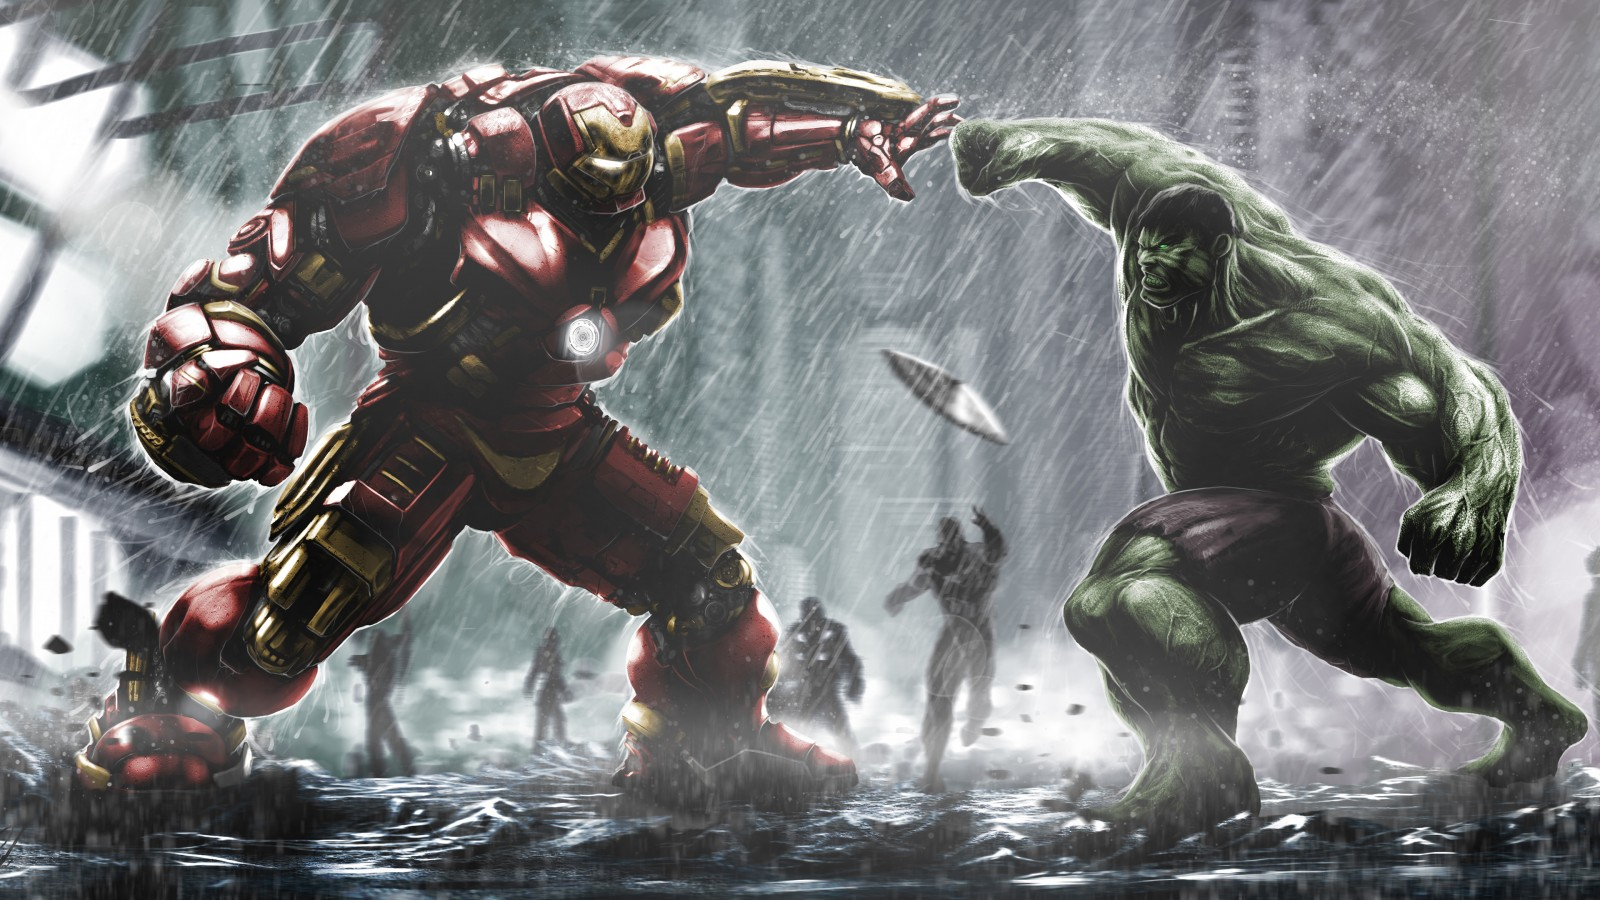 Hd Wallpapers 1080p Widescreen Hulkbuster Ironman Vs Hulk Wallpapers Hd Wallpapers Id